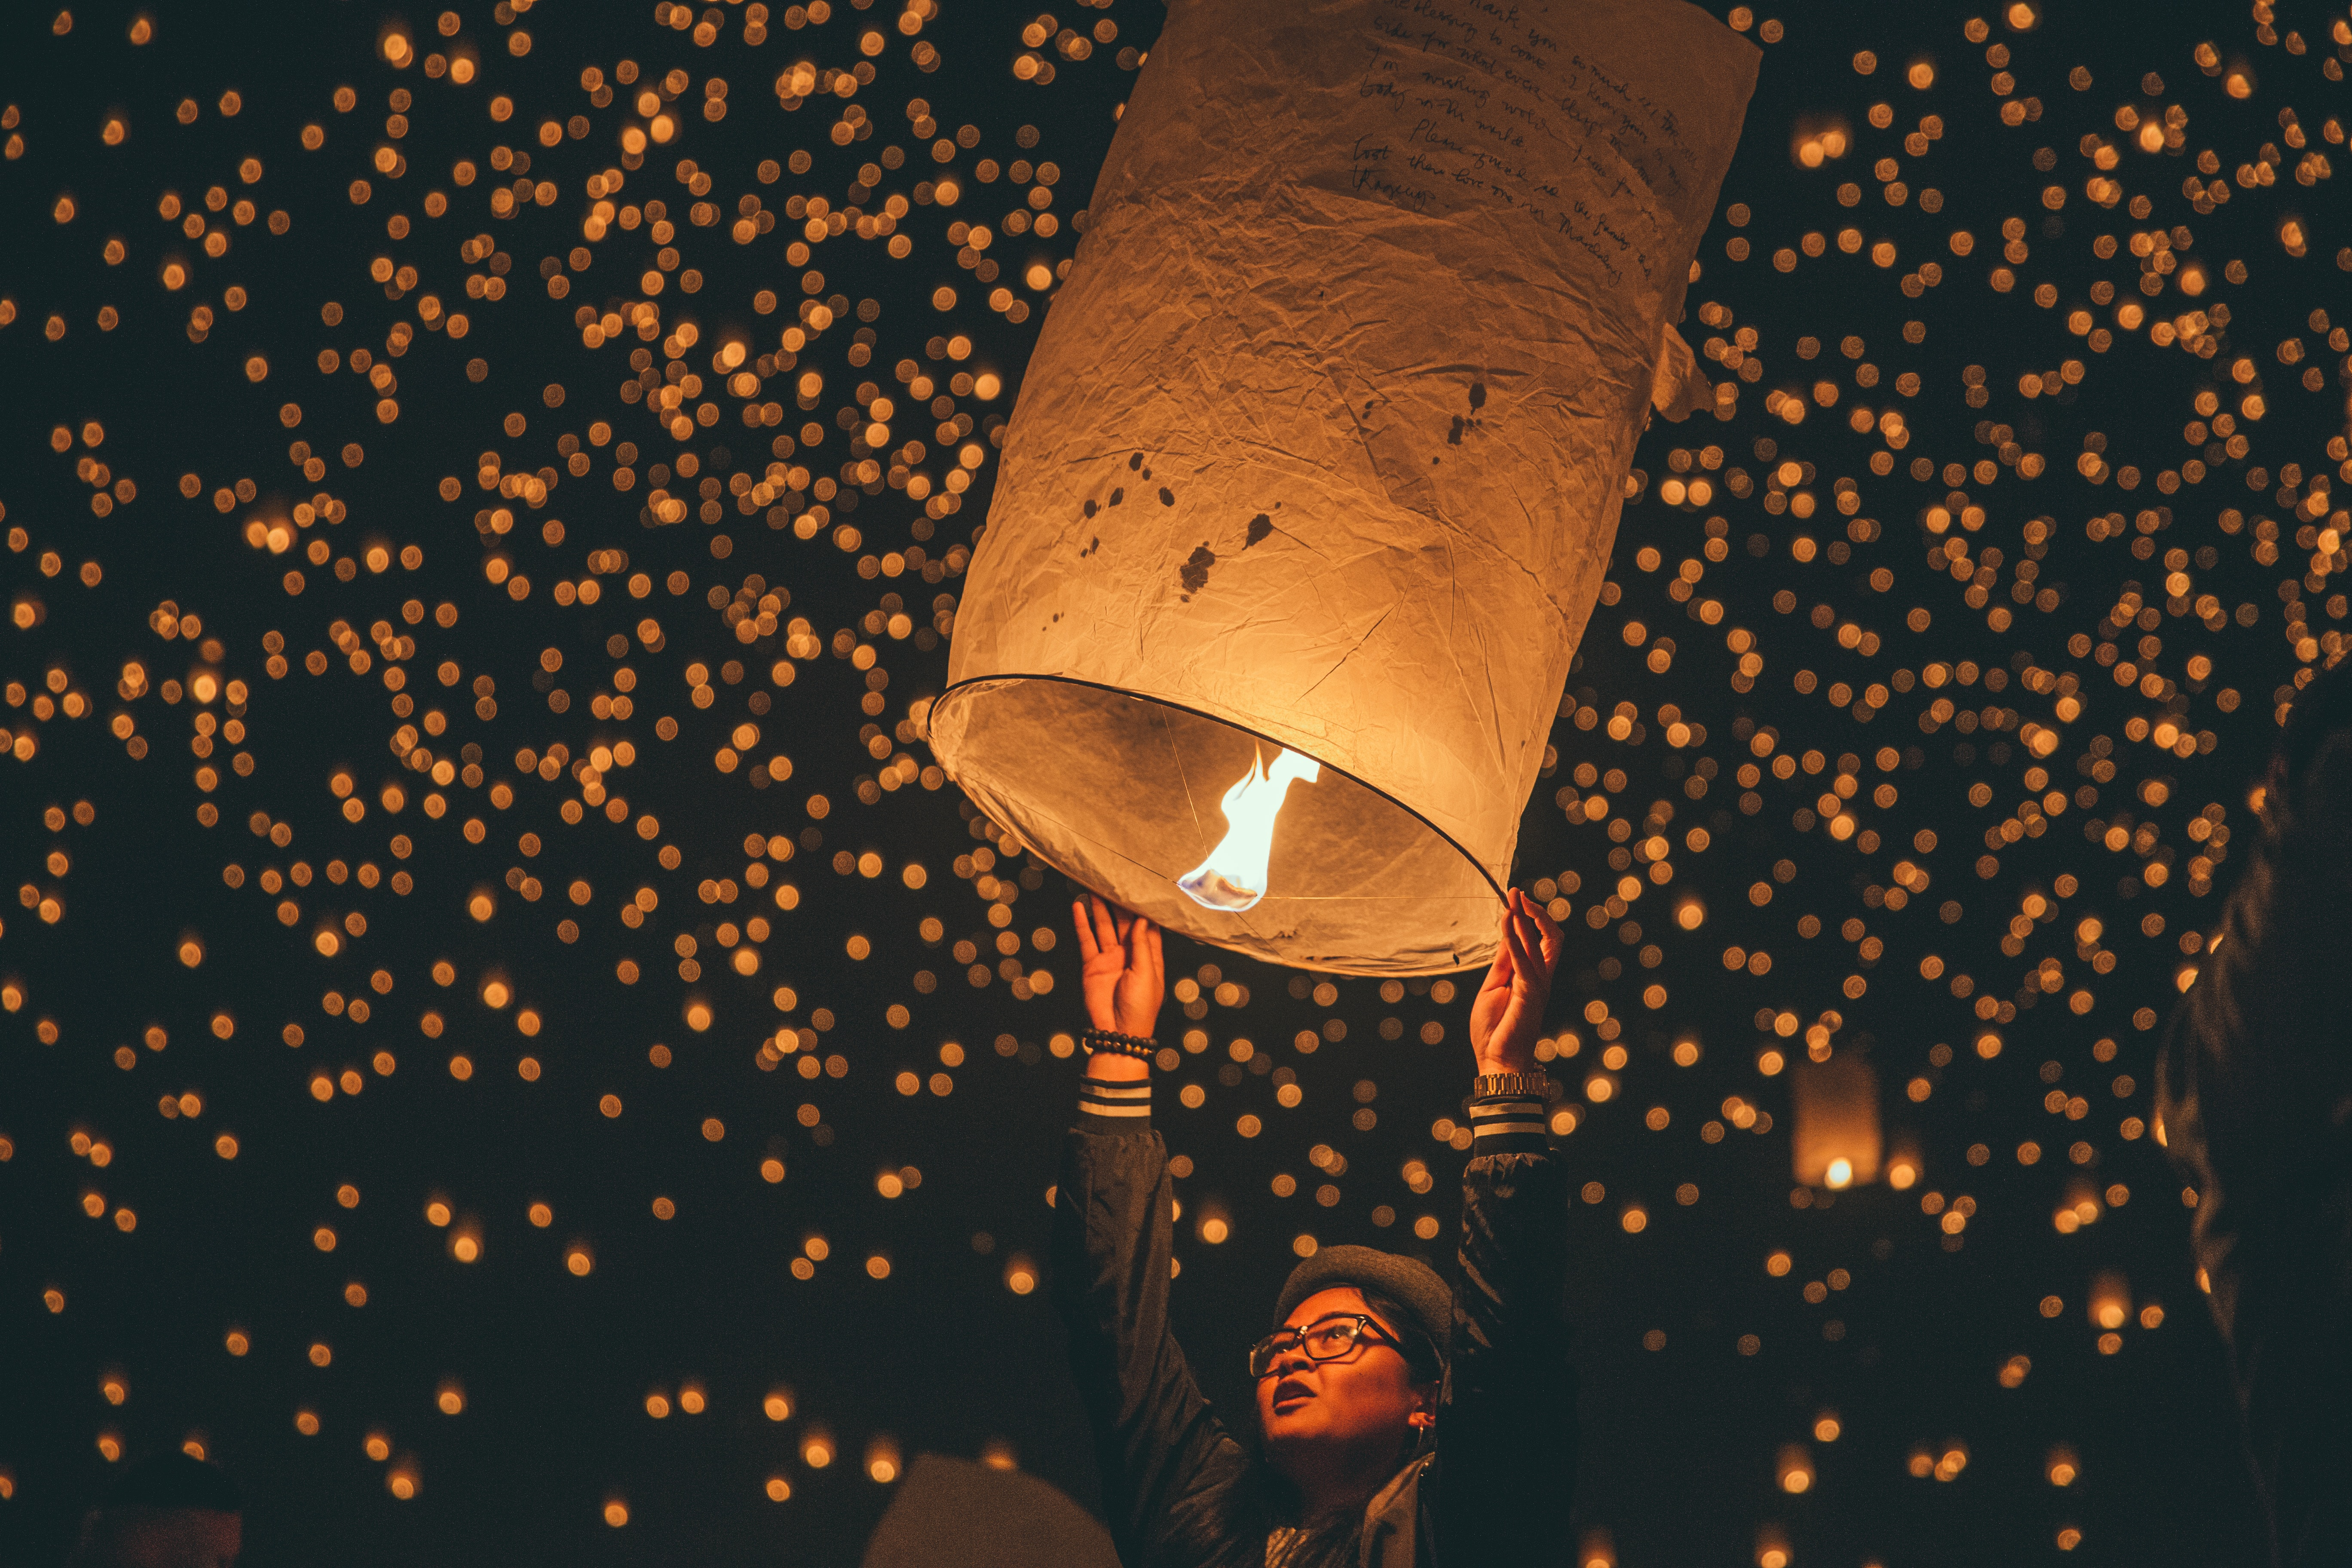 person holding paper lantern